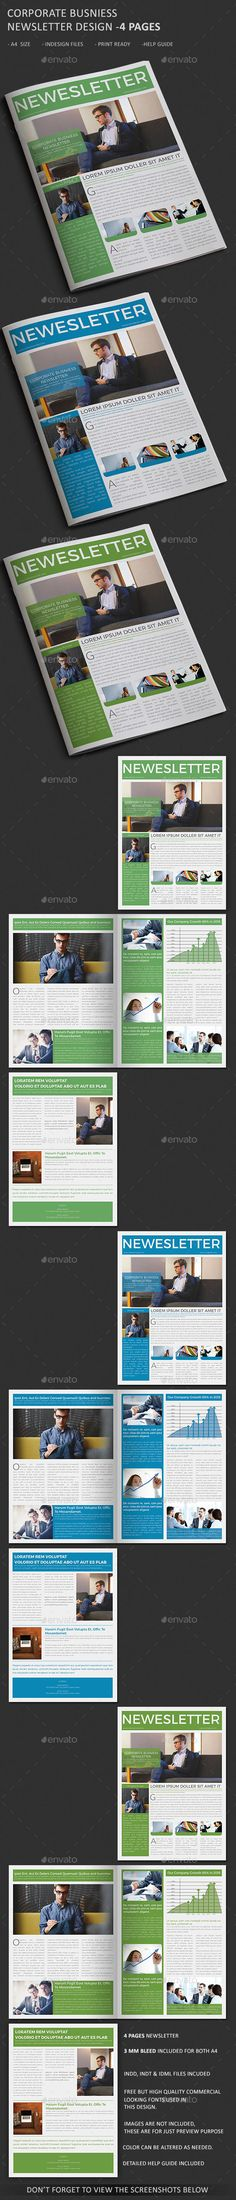 Corporate Newsletter-V02 | Print Templates, Newsletter Templates